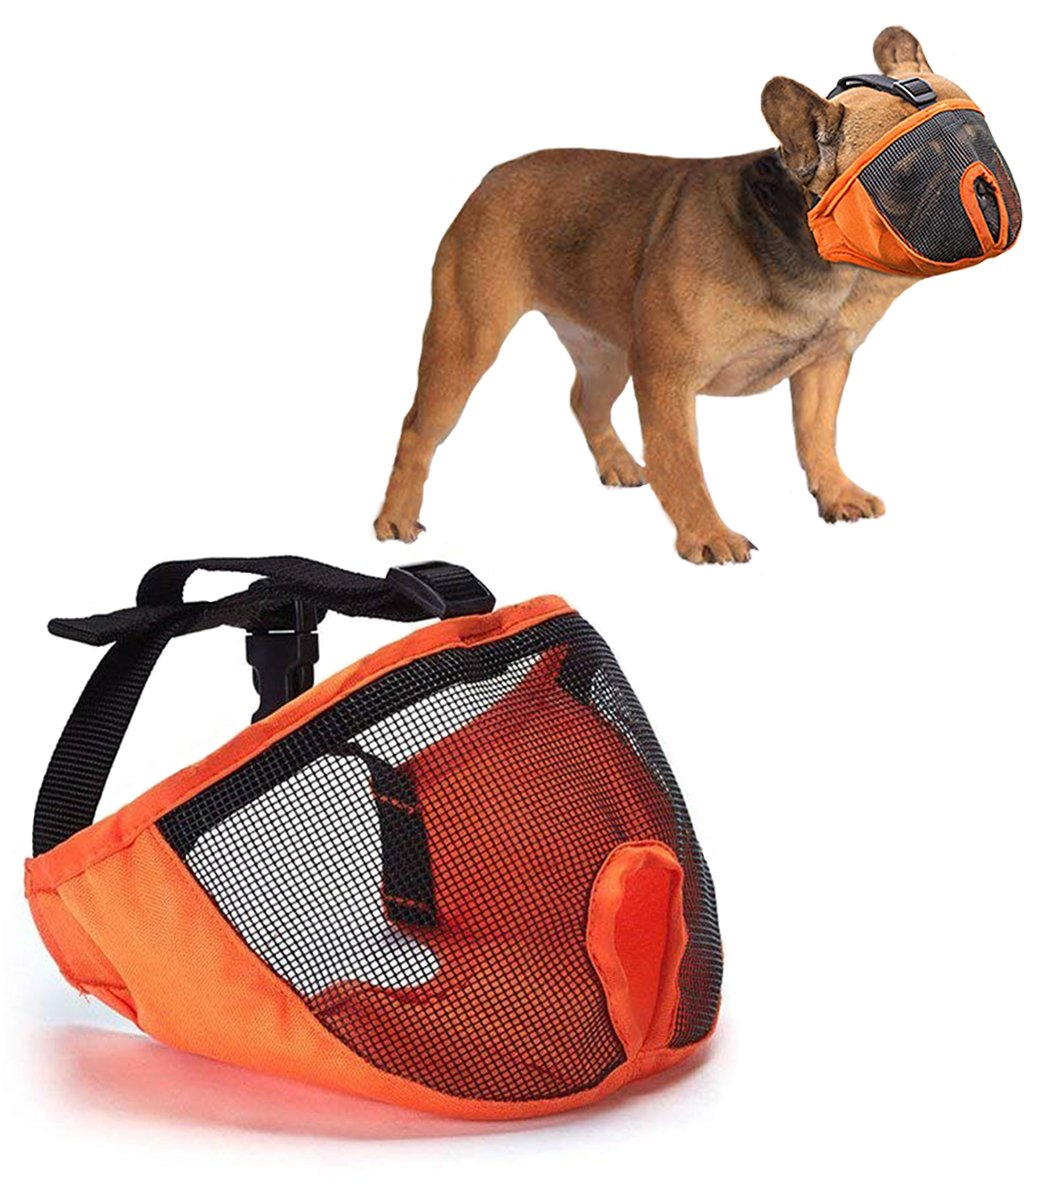 orange S orange S Luckshow Dog Muzzle for Short Snout Stops Biting and Chewing Bulldog Muzzle Breathable Mesh Adjustable Size Comfortable and Durable Nylon Cloth